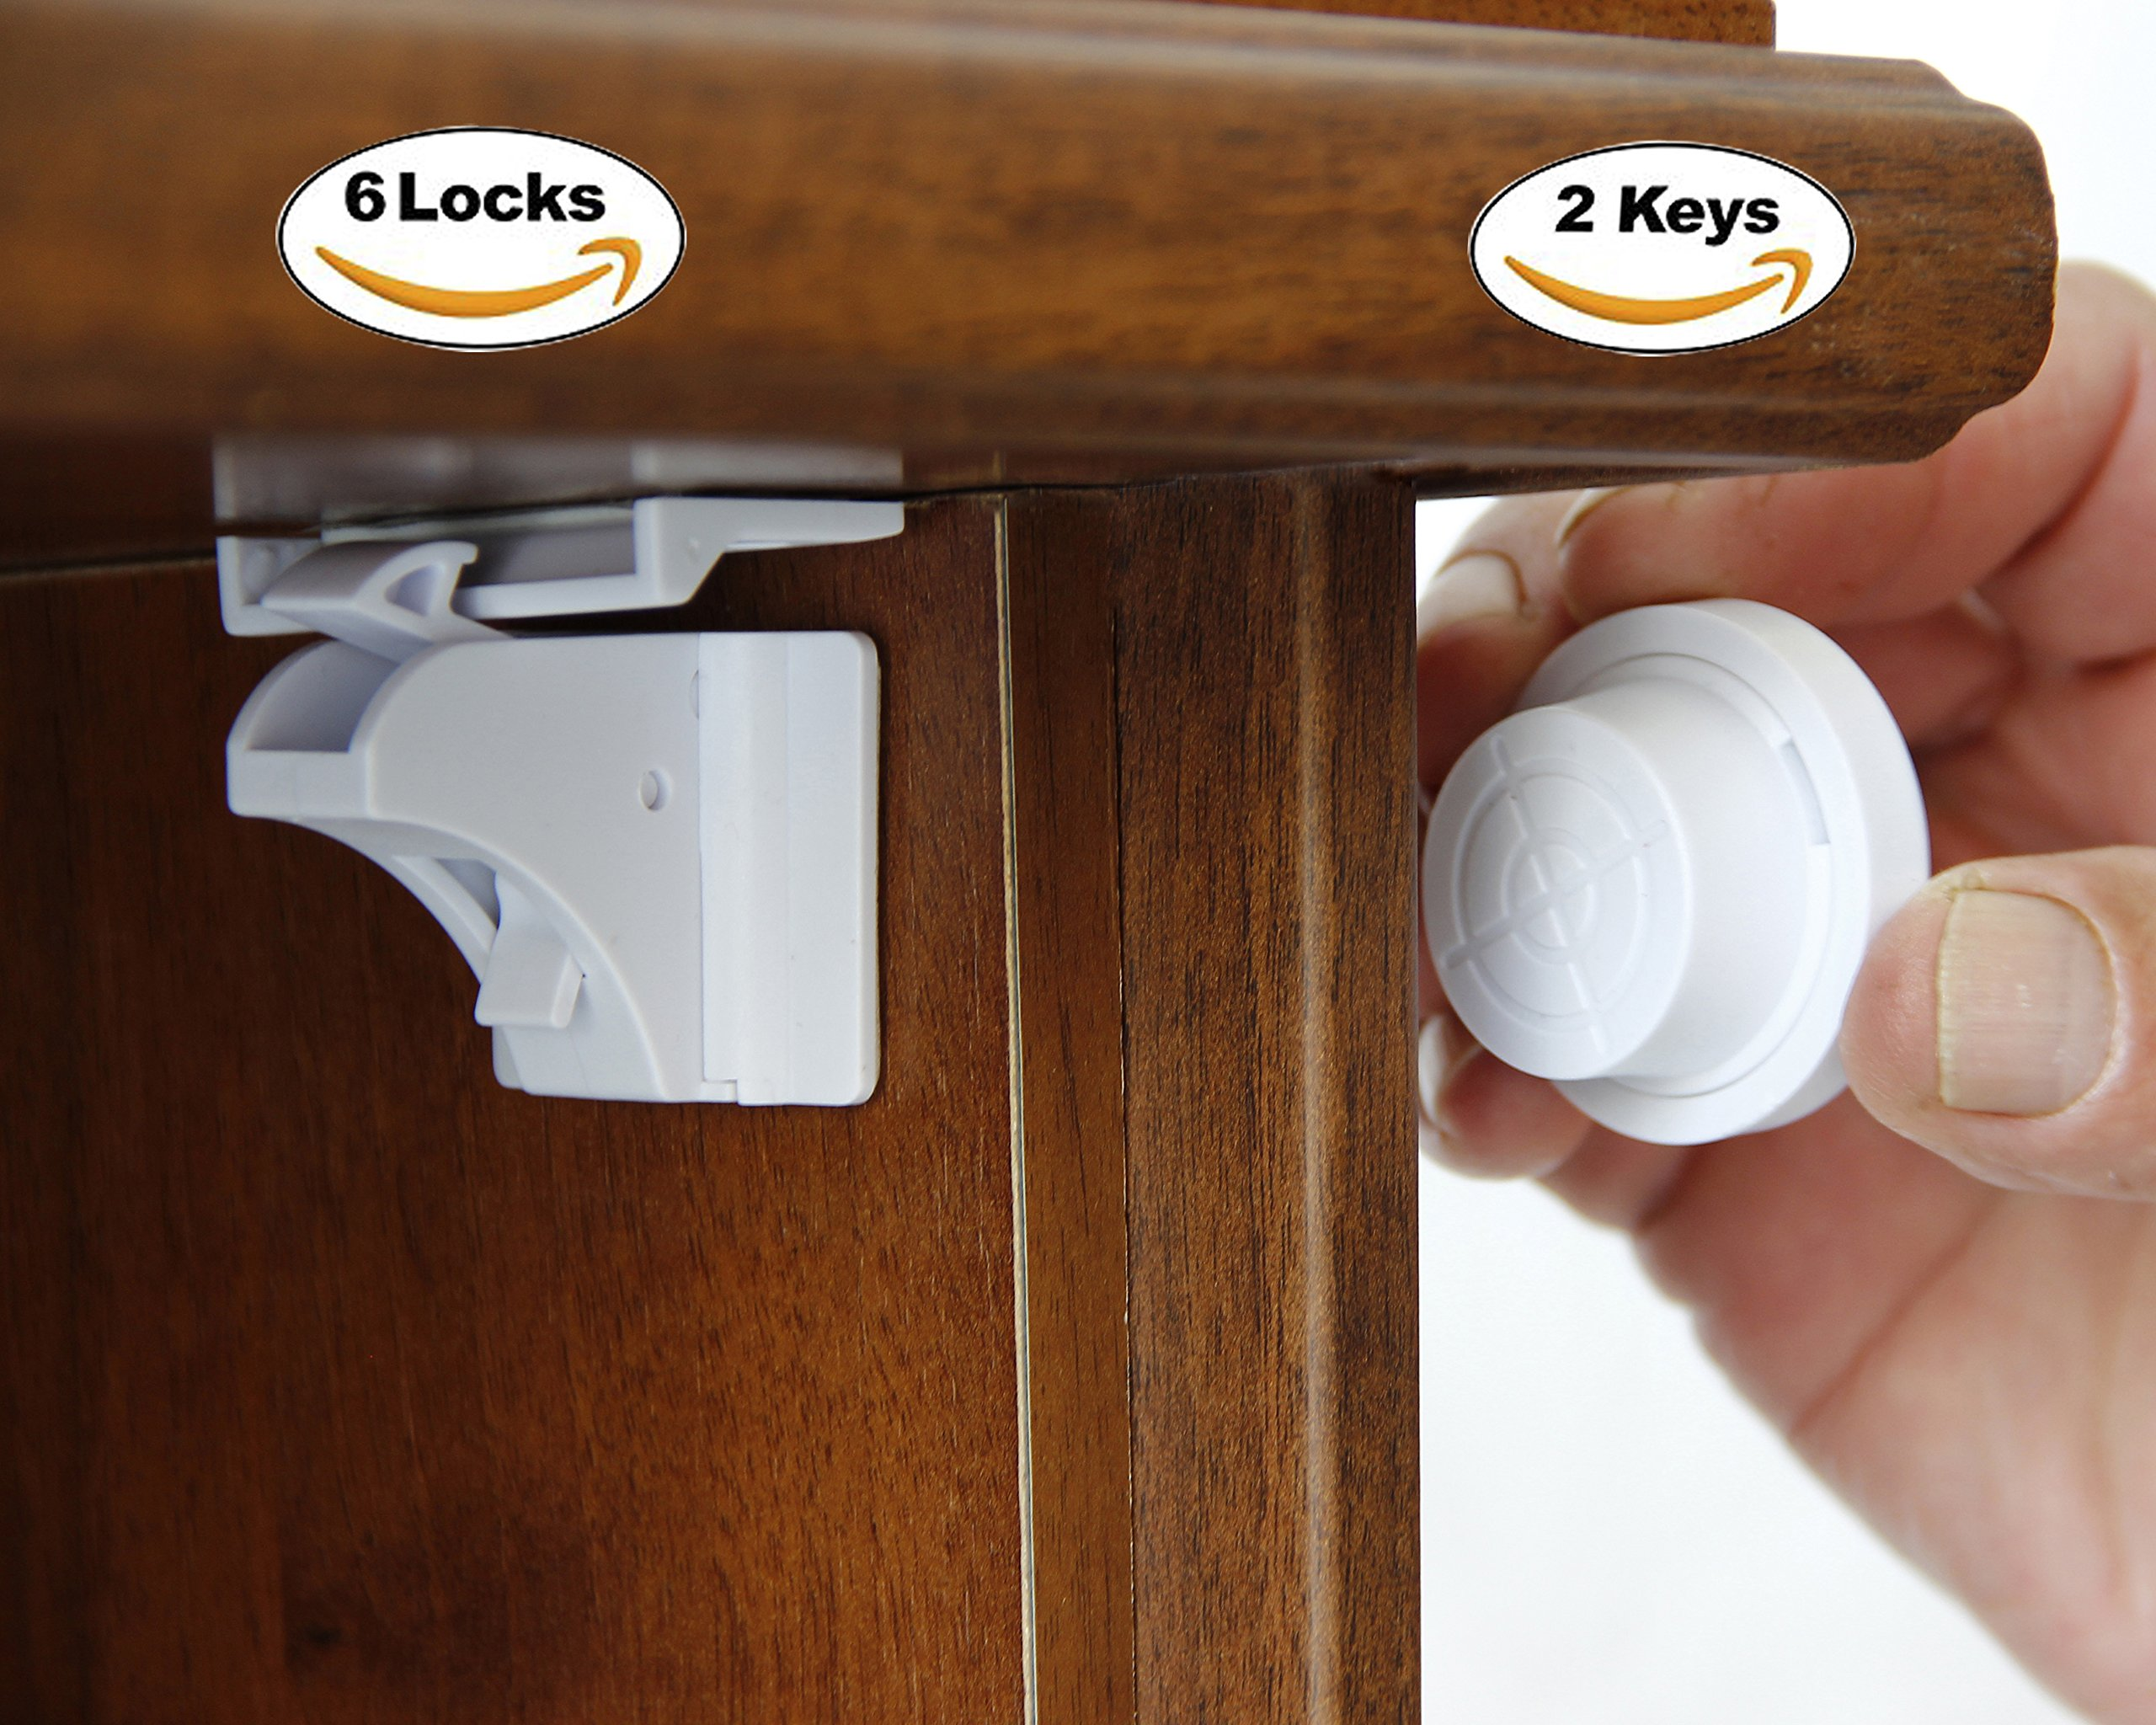 Cabinet Locks Child Safety Childproof Drawer Locks Baby Magnetic Locking System with 3M Adhesive Tape No Drilling Easy to Install Safety Kit Cabinet & Drawer Latches 6 + 2 Keys+ 2 Adjustable Straps